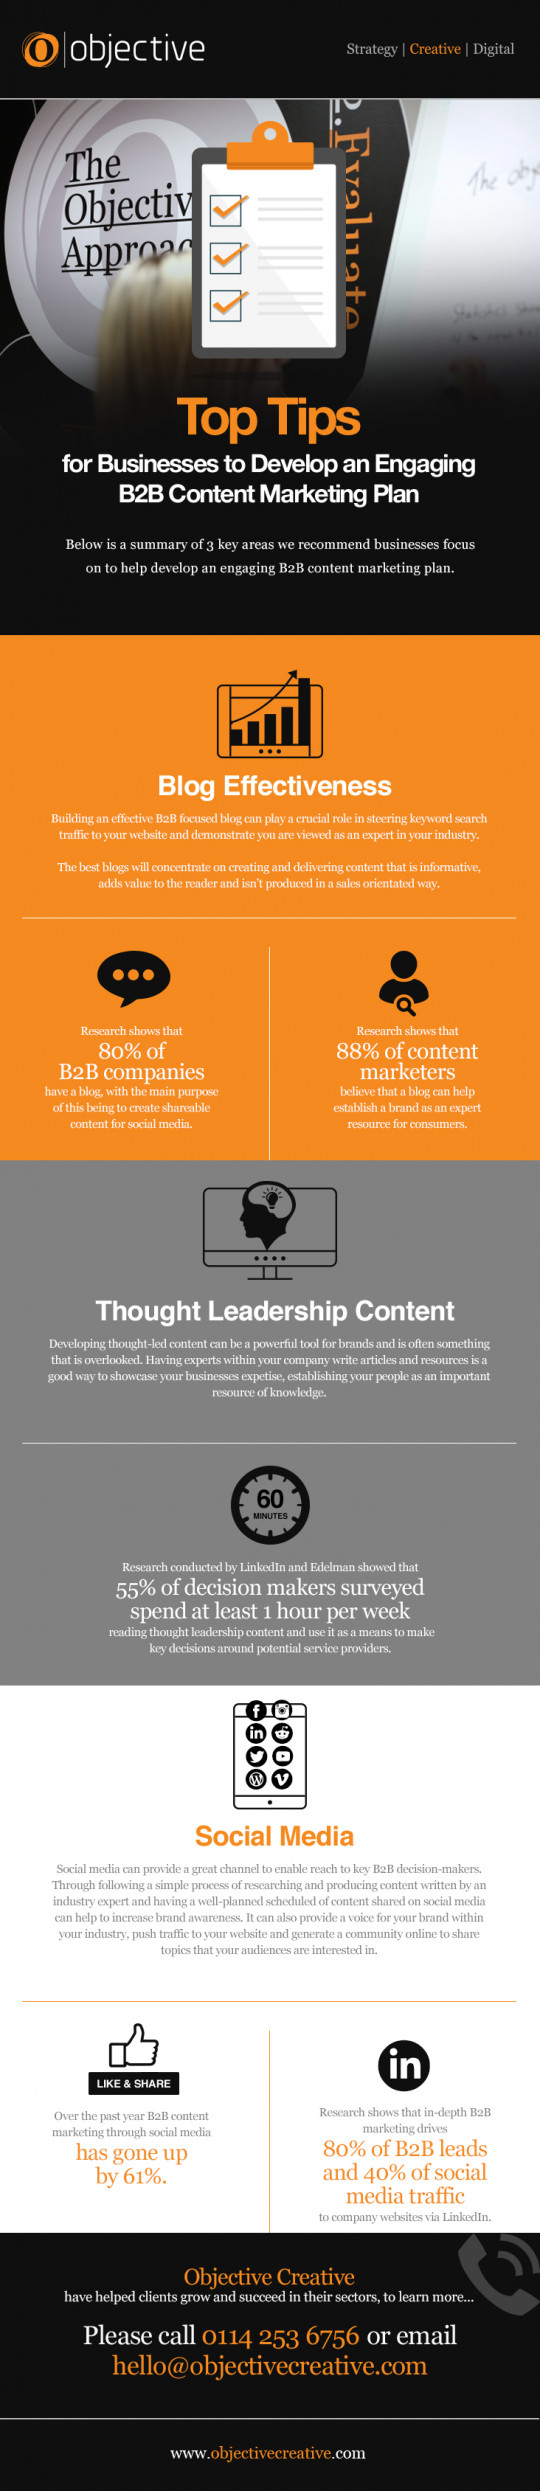 Tops Tips for Businesses to Develop an Engaging B2B Content Marketing Plan